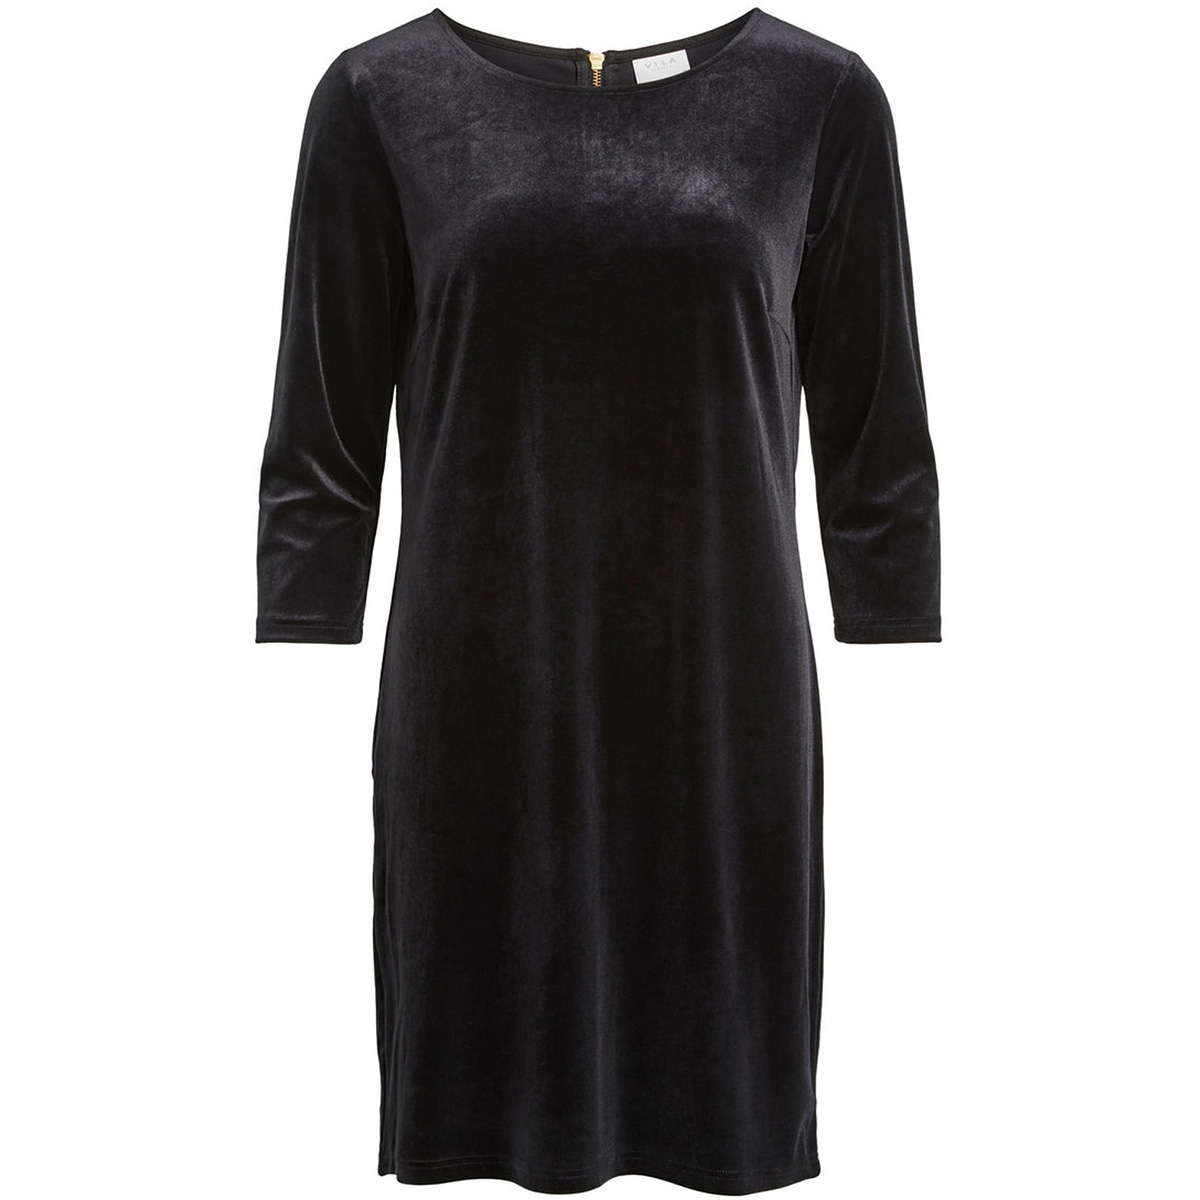 viminny velvet 3/4 sleeve dress 14049619 vila jurk black